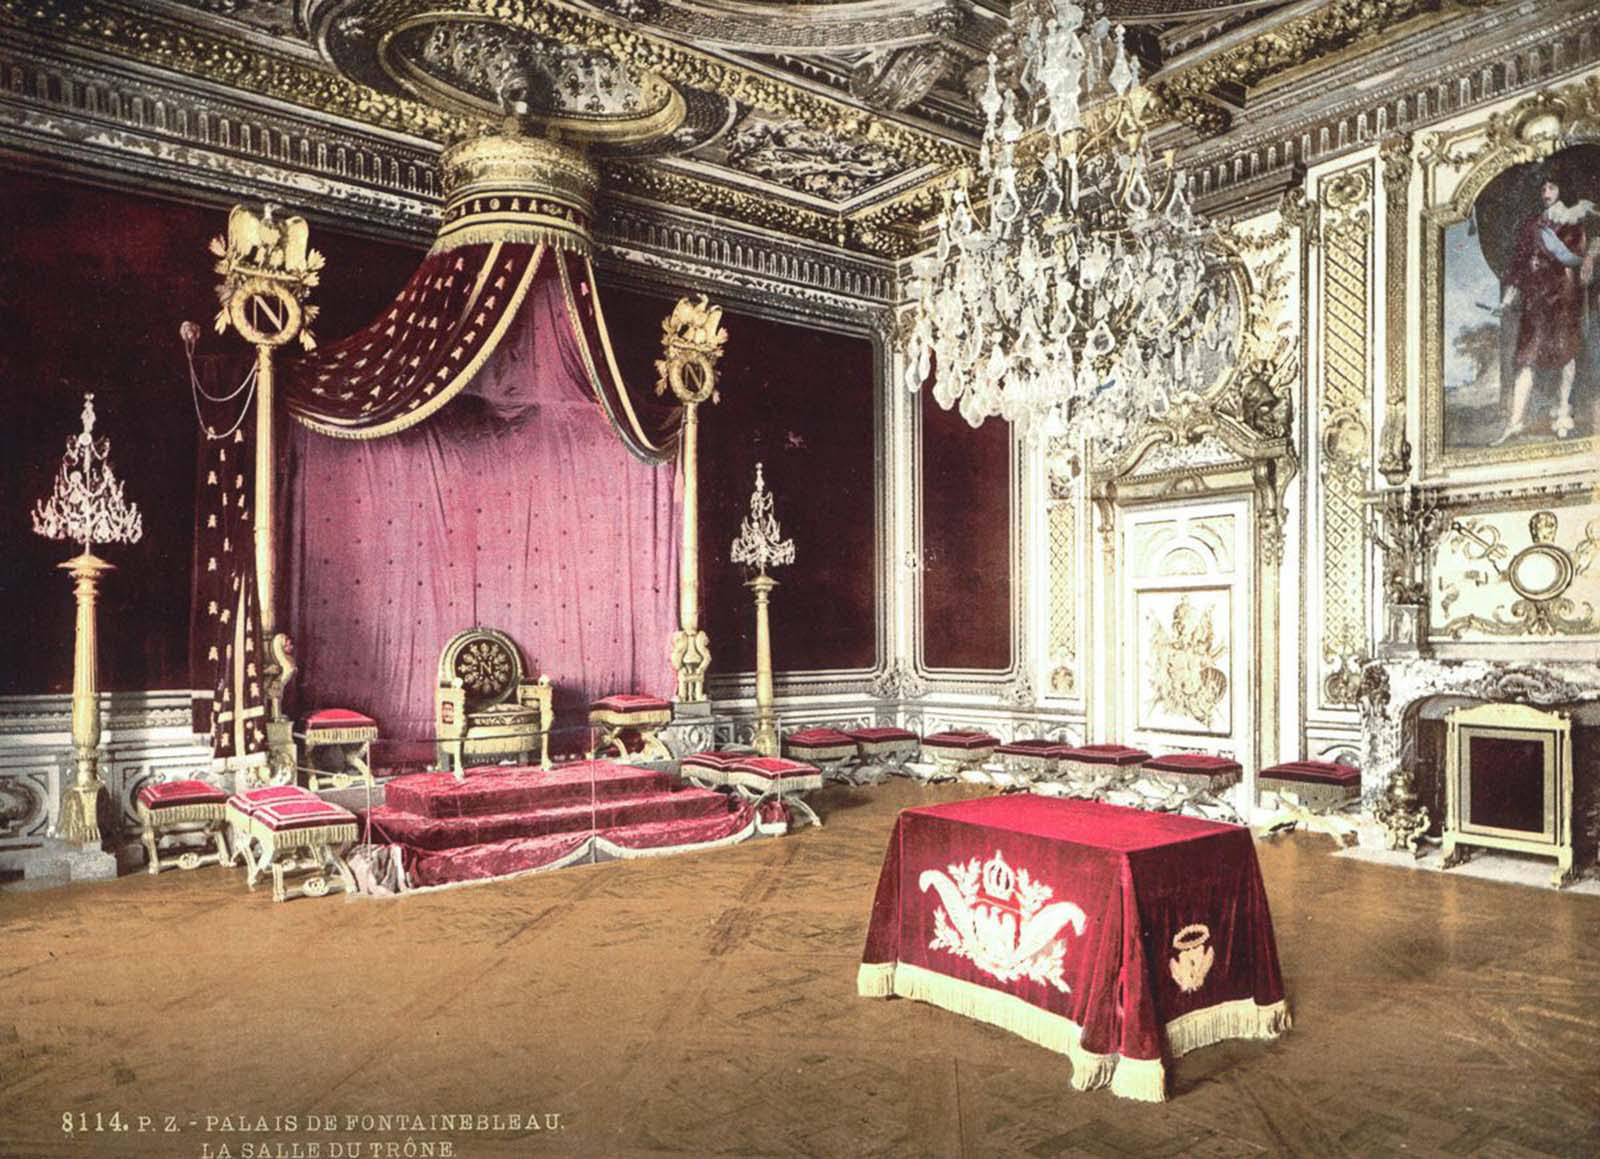 The throne room, Fontainebleau Palace.